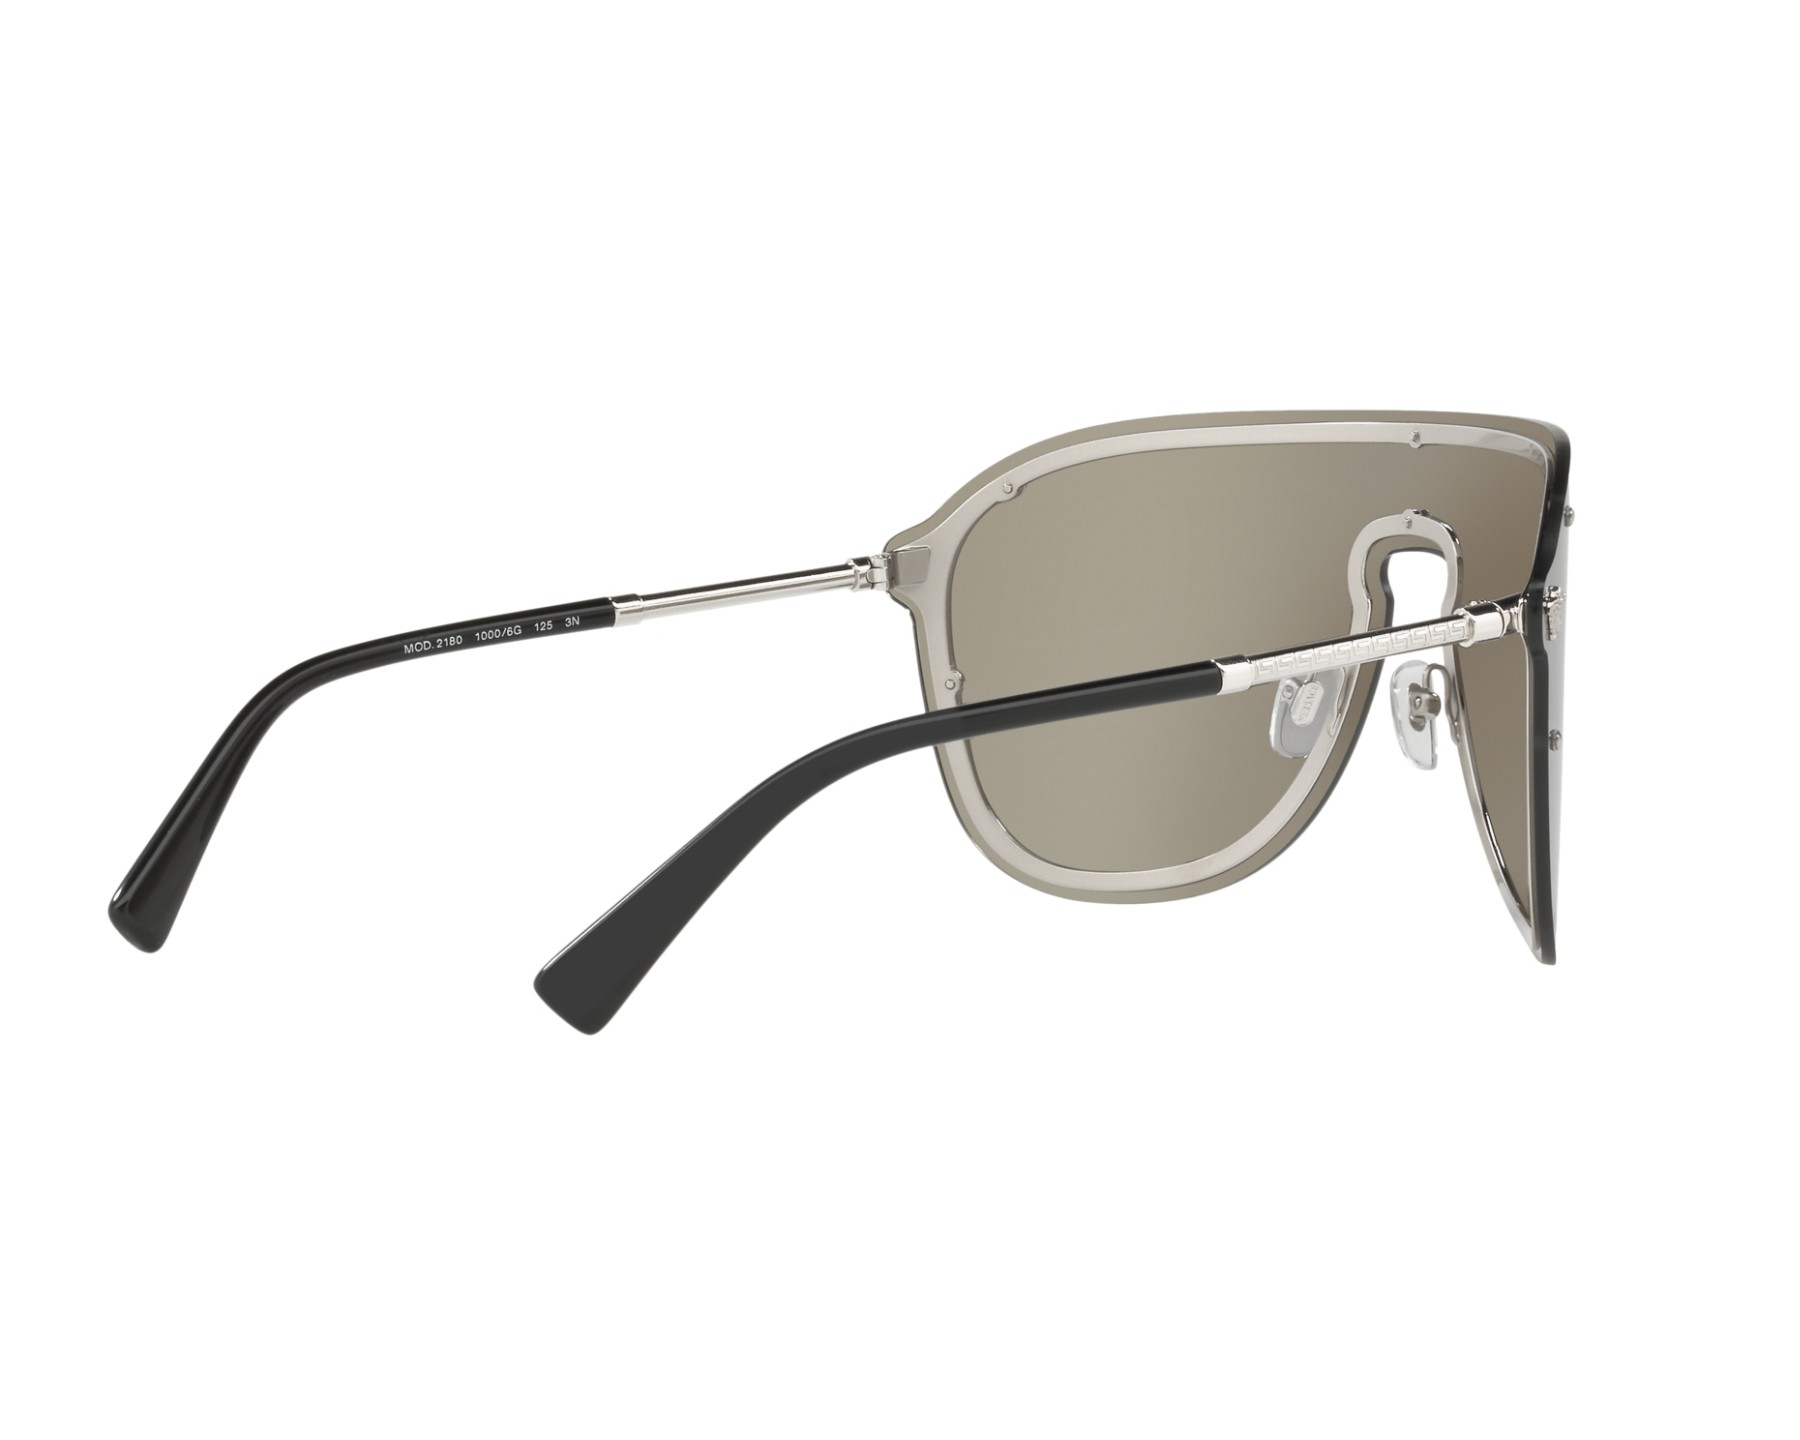 0d83fb4fd3 Sunglasses Versace VE-2180 10006G 44- Silver 360 degree view 9